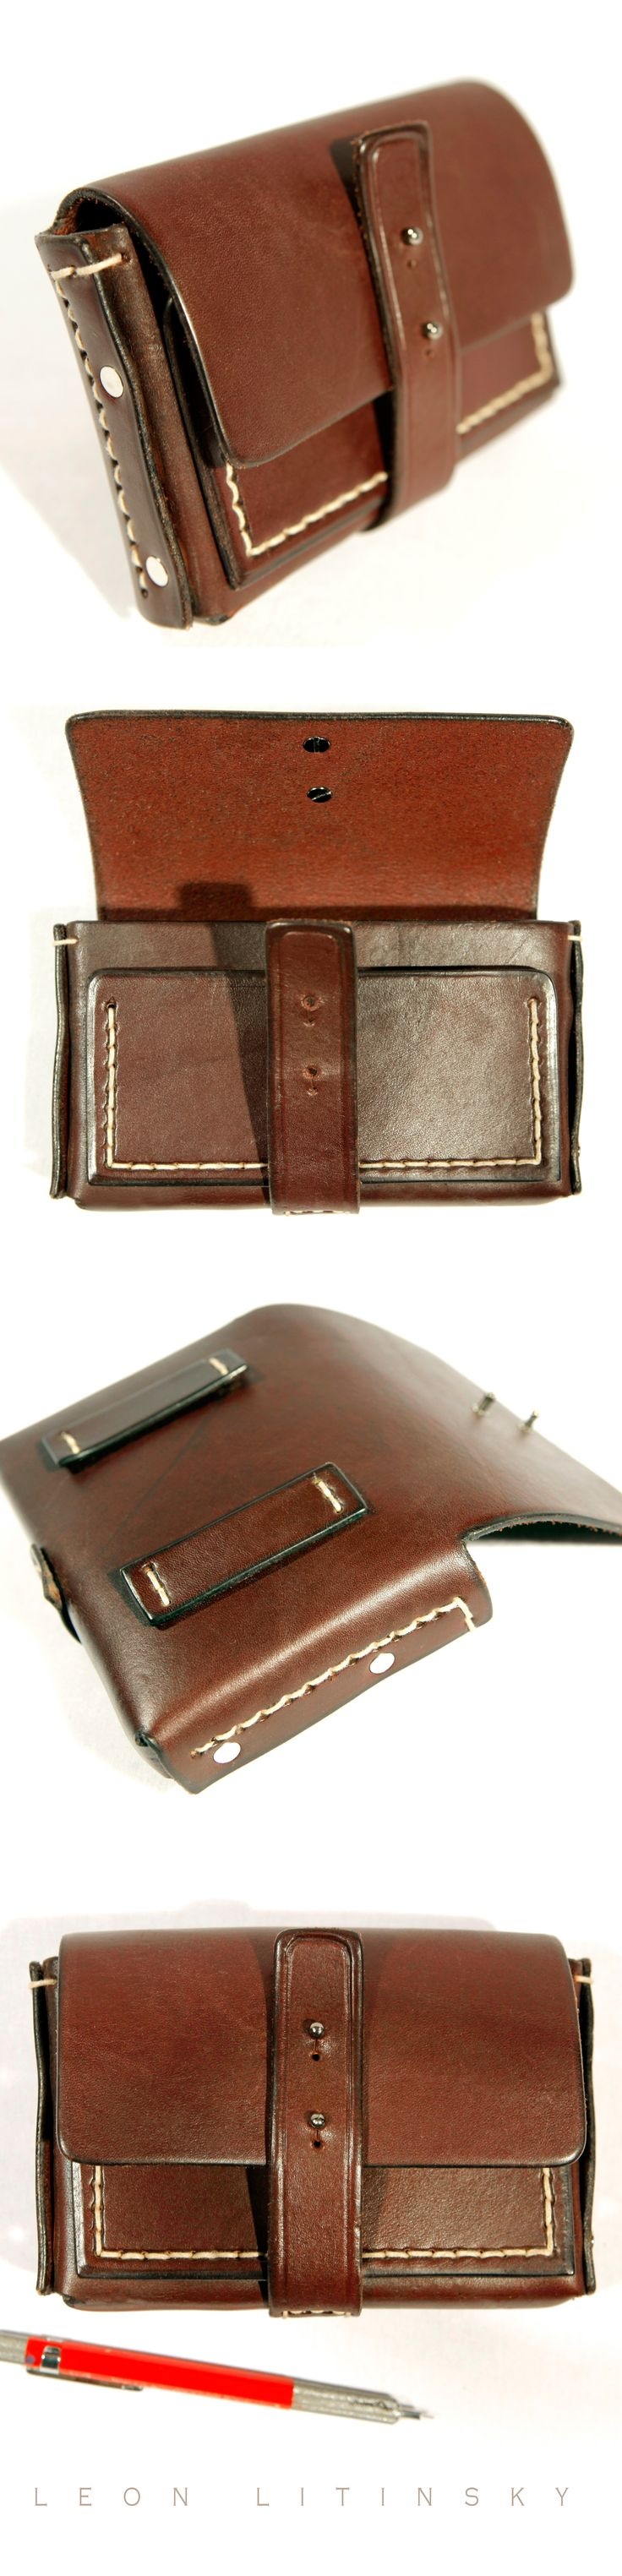 Leather Pouch Bag.  Fits smart phone, cigarettes, lighter, cash, cards and there is a still room for a pony... By Leon Litinsky